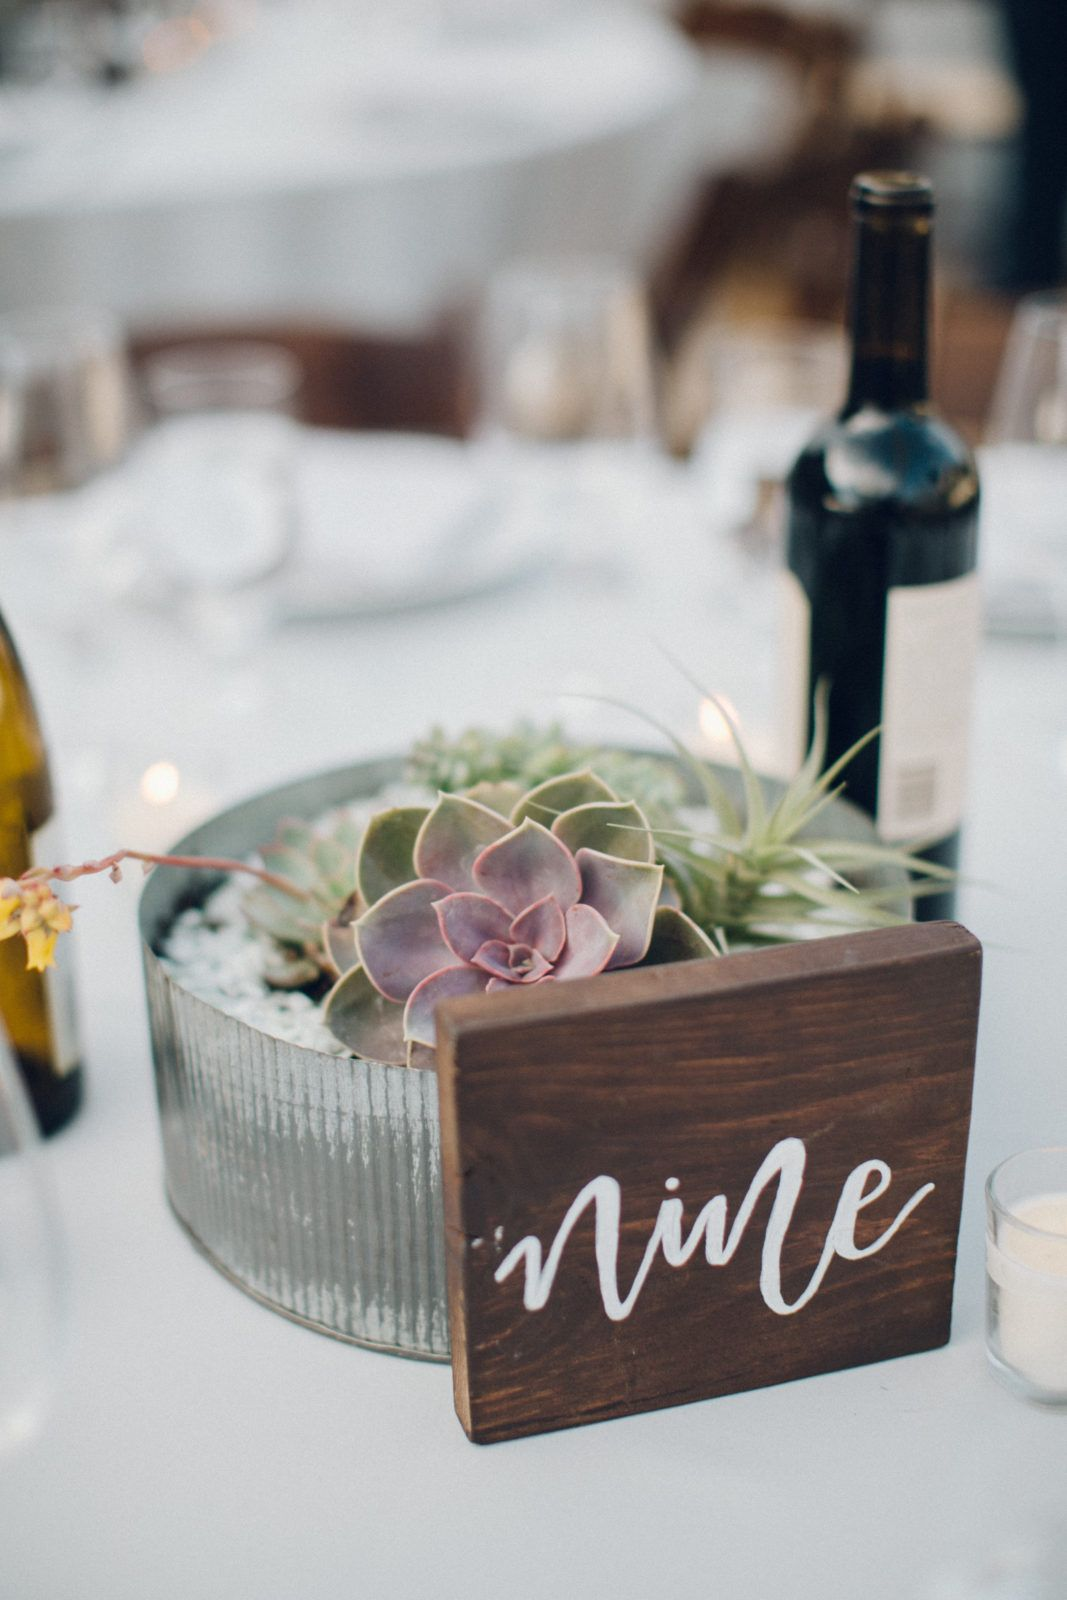 A Desert Wedding In Ojai At Red Tail Ranch Vintage Bride And Groom Succulent Centerpiece With Wooden Table Number